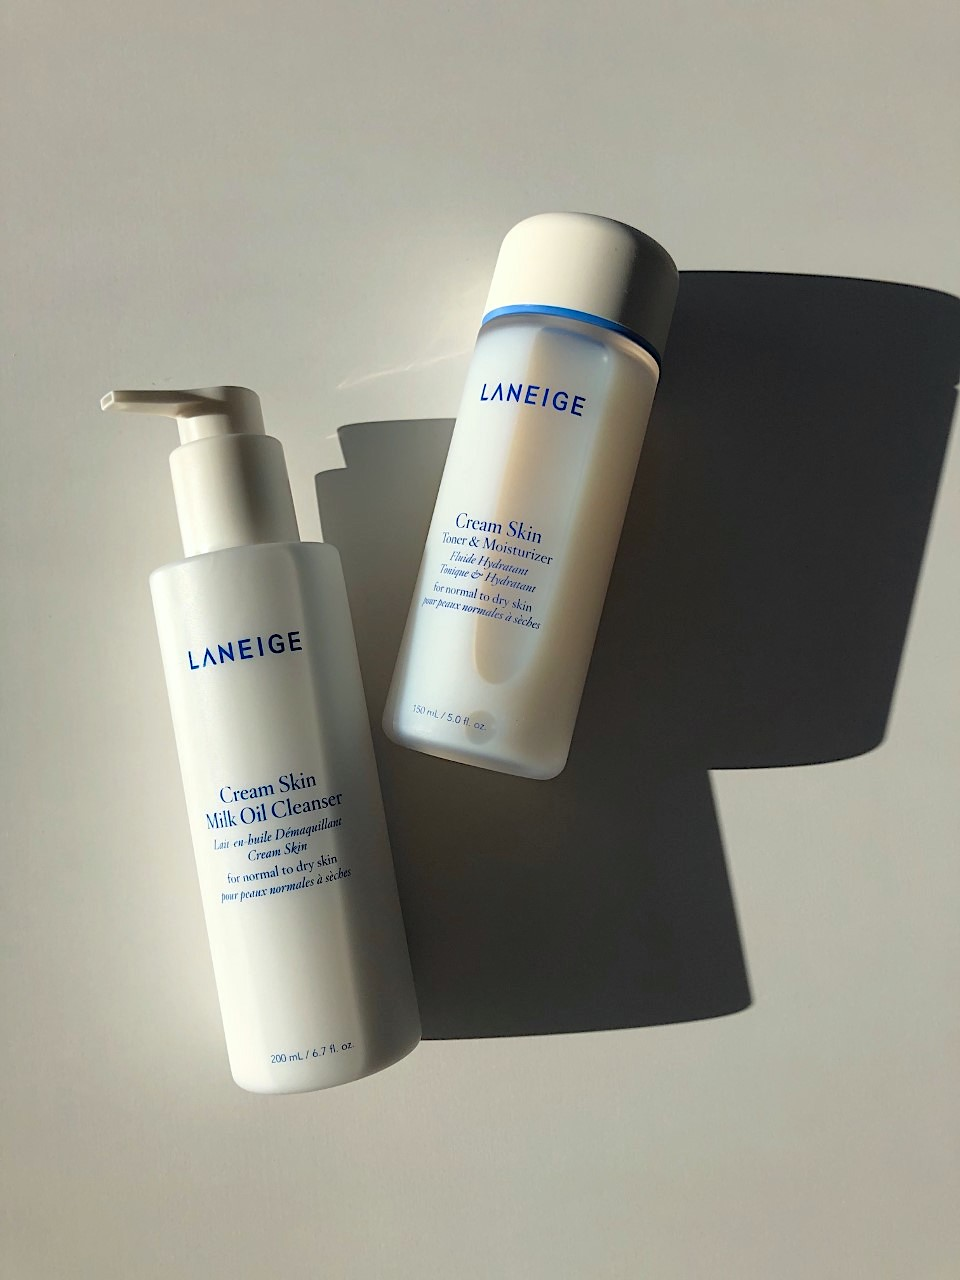 Laneige Cream Skin Milk Oil Cleanser: A quick review